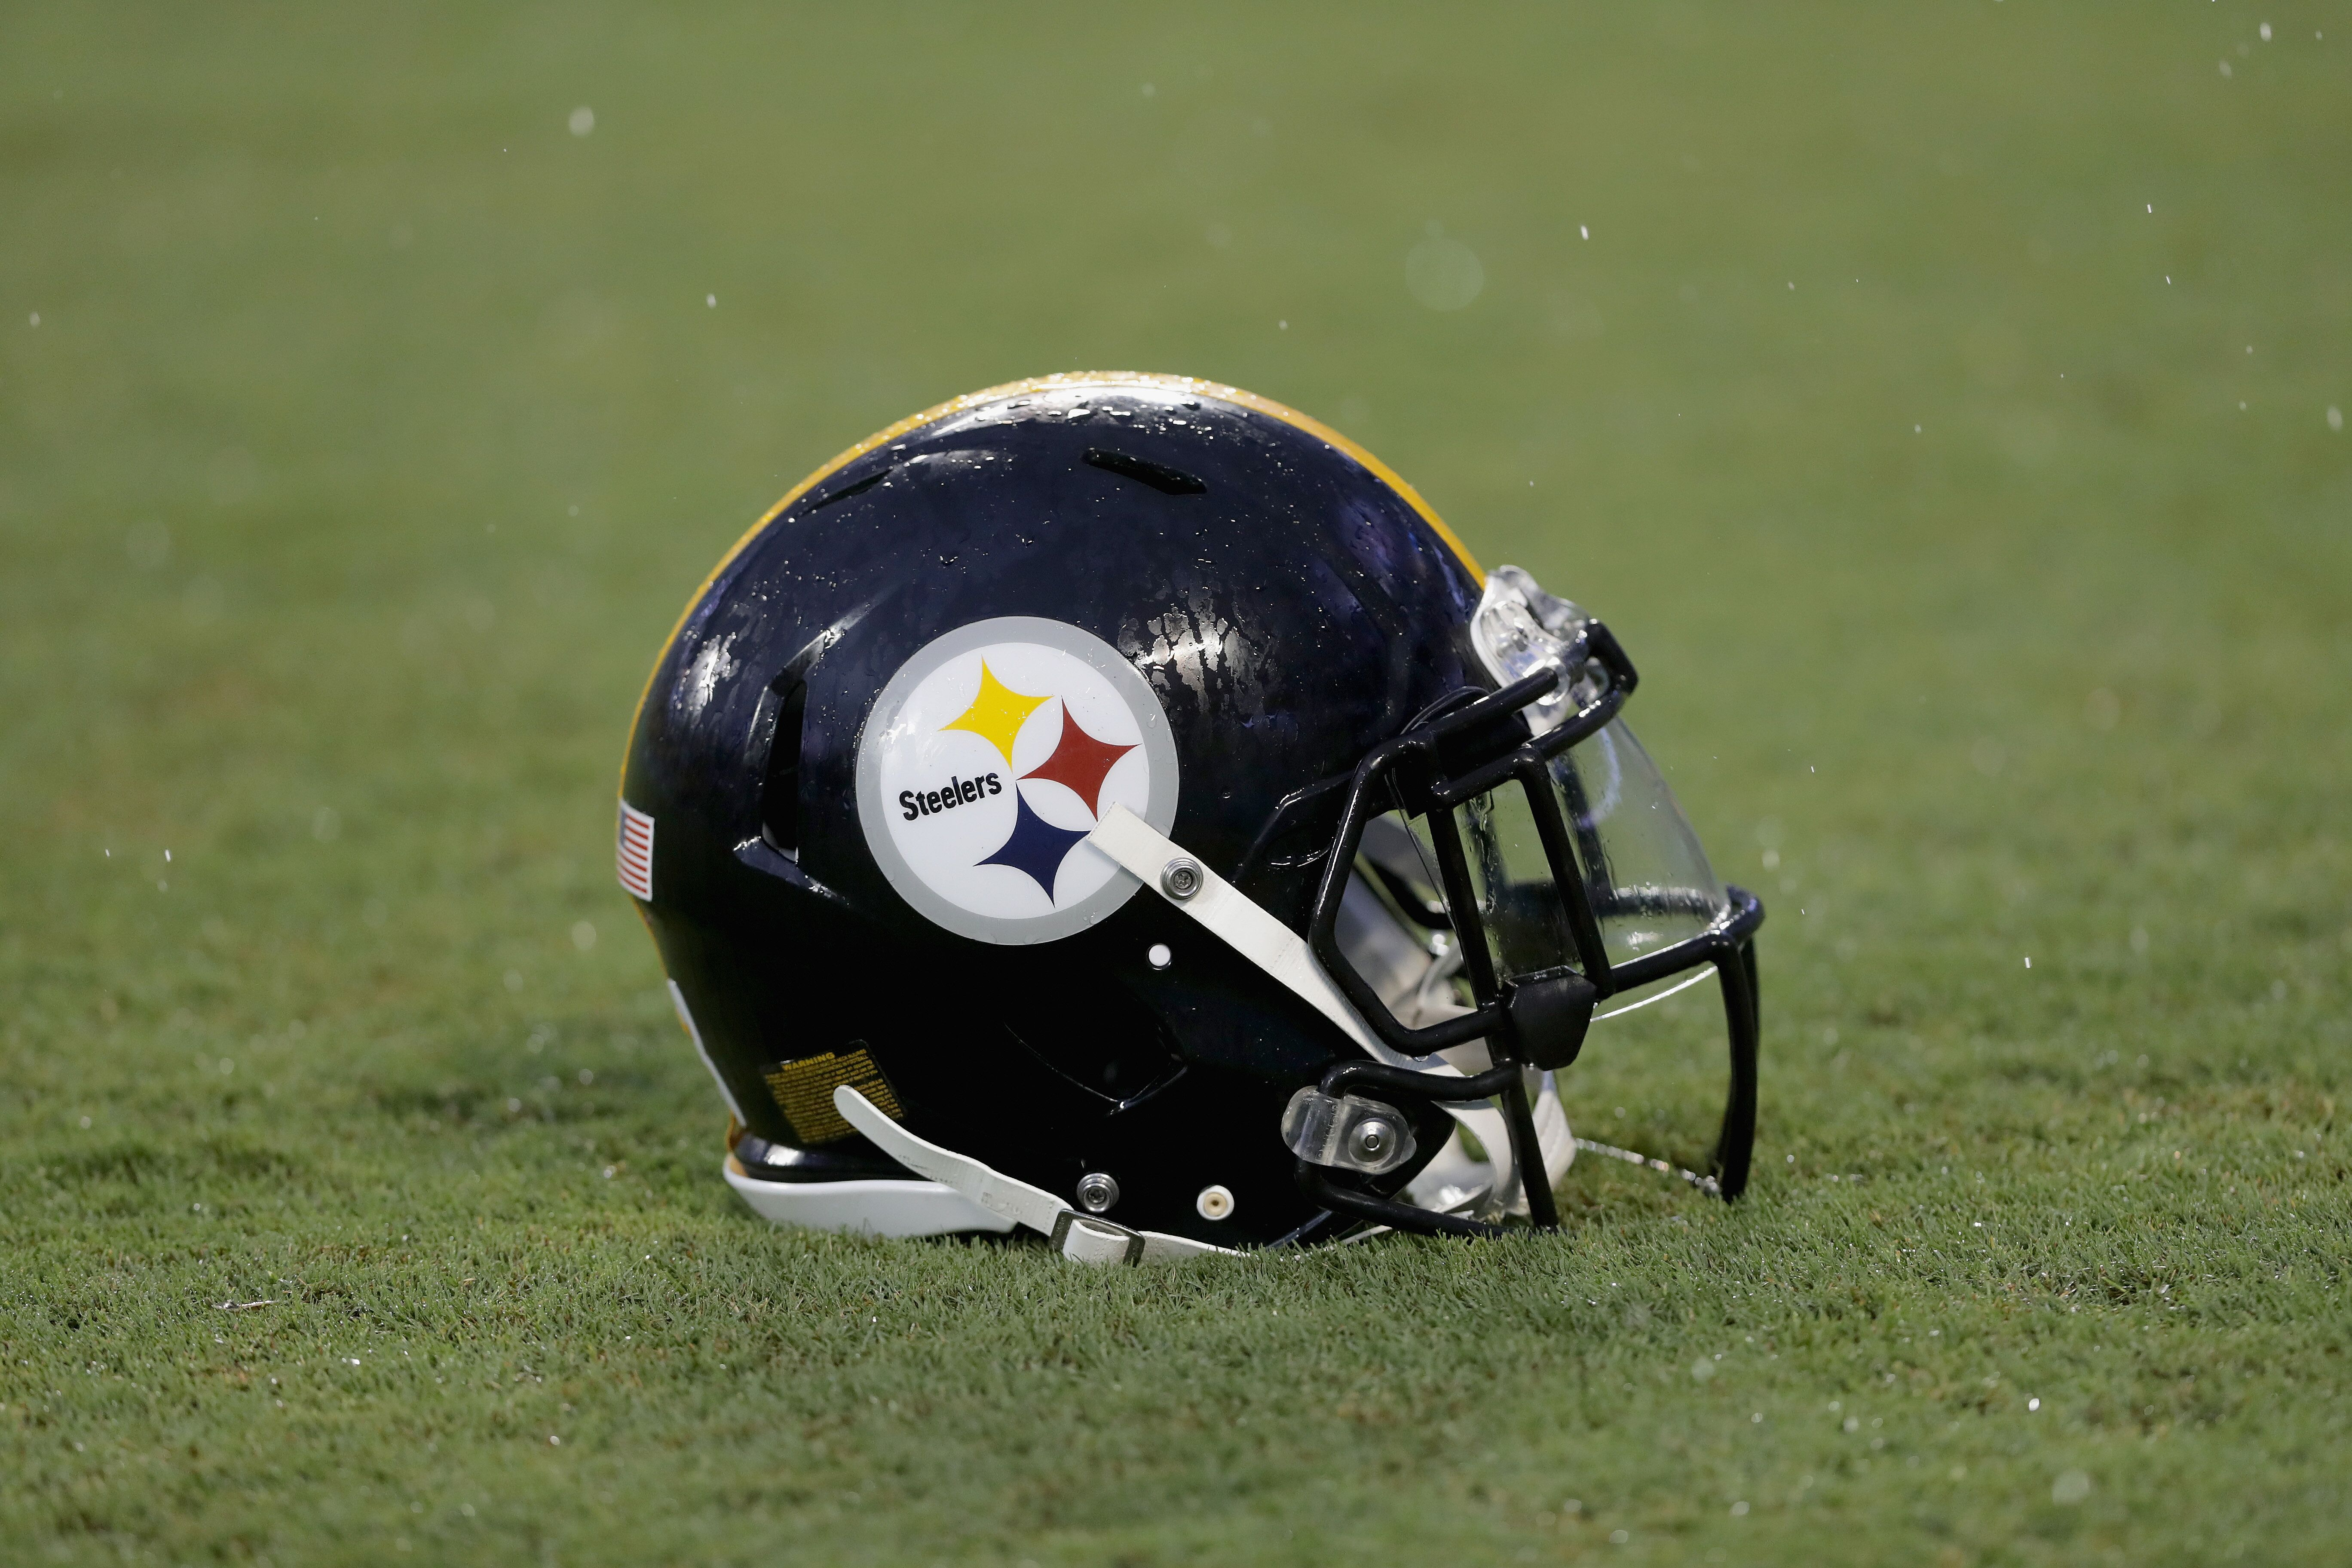 a91589265af All-Time Pittsburgh Steelers team: Who makes the cut?